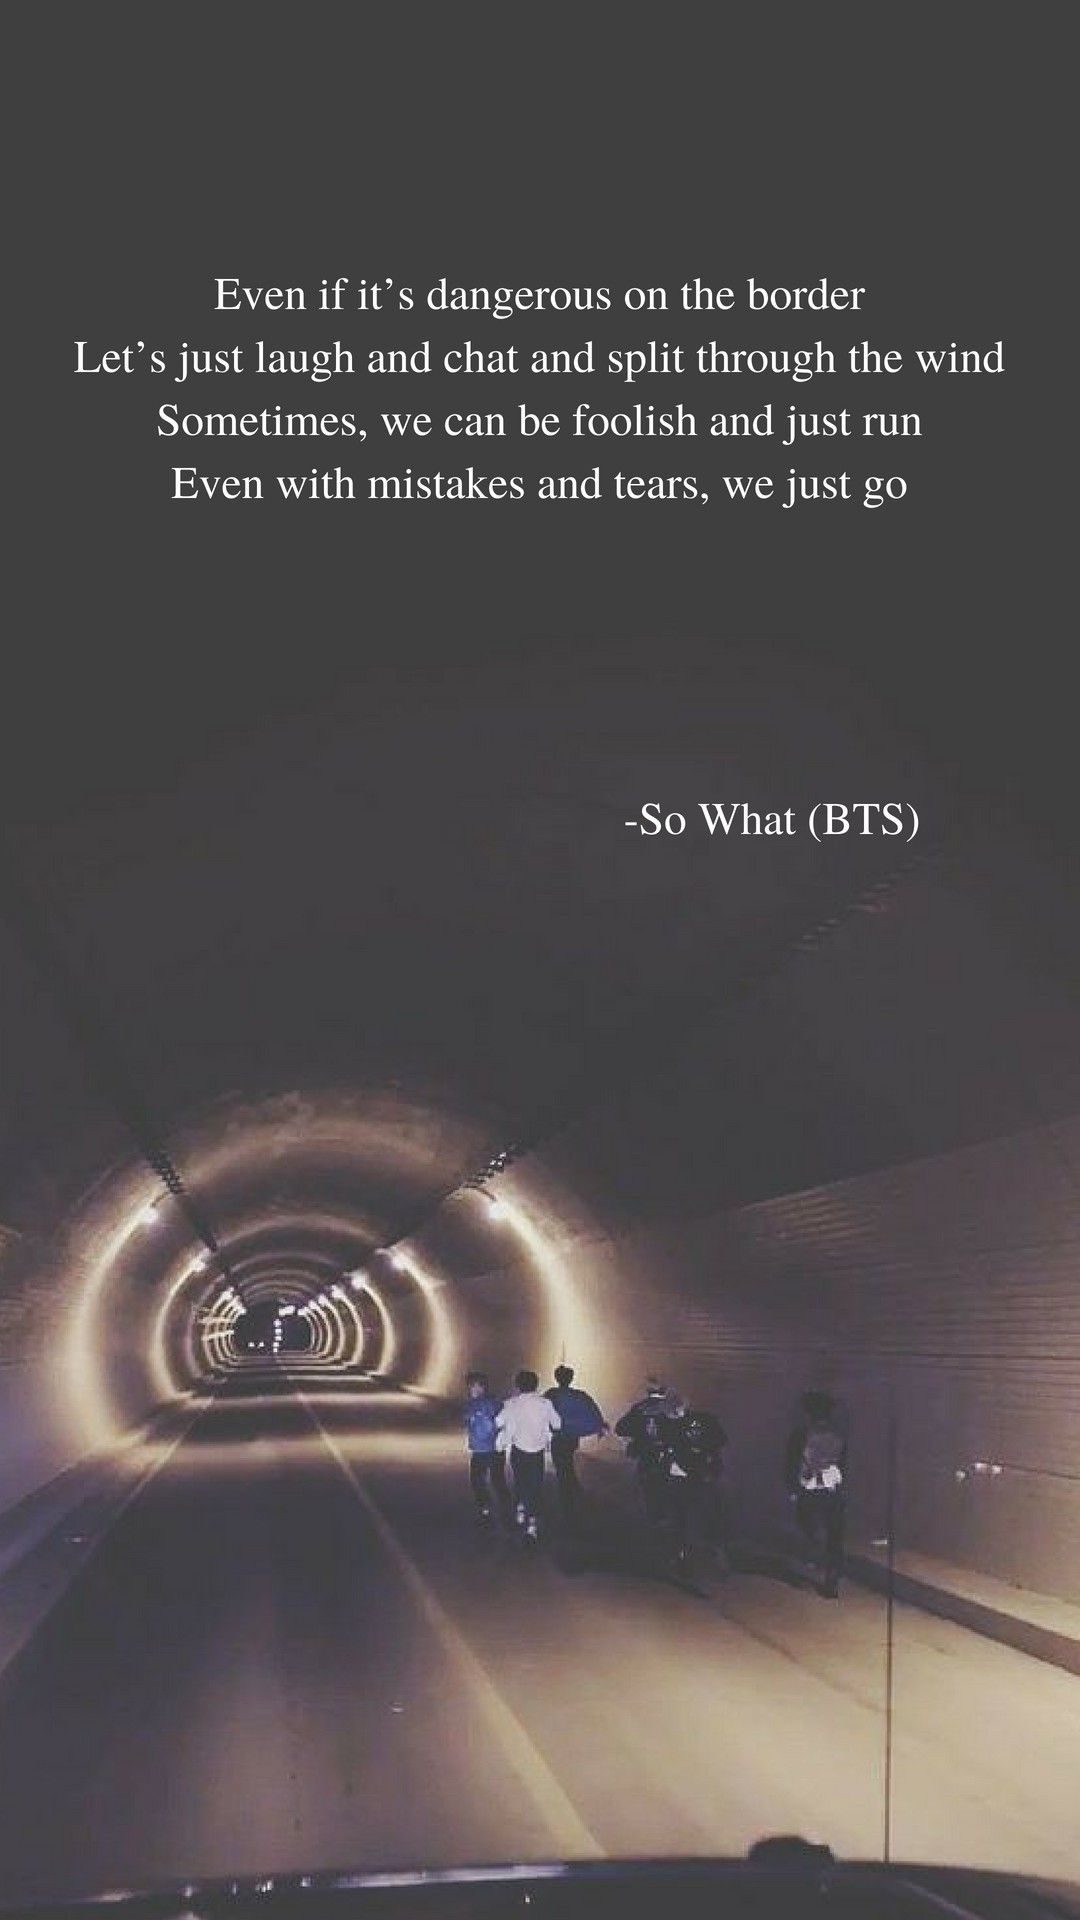 so what bts lyrics bts lyrics quotes bts lyric bts